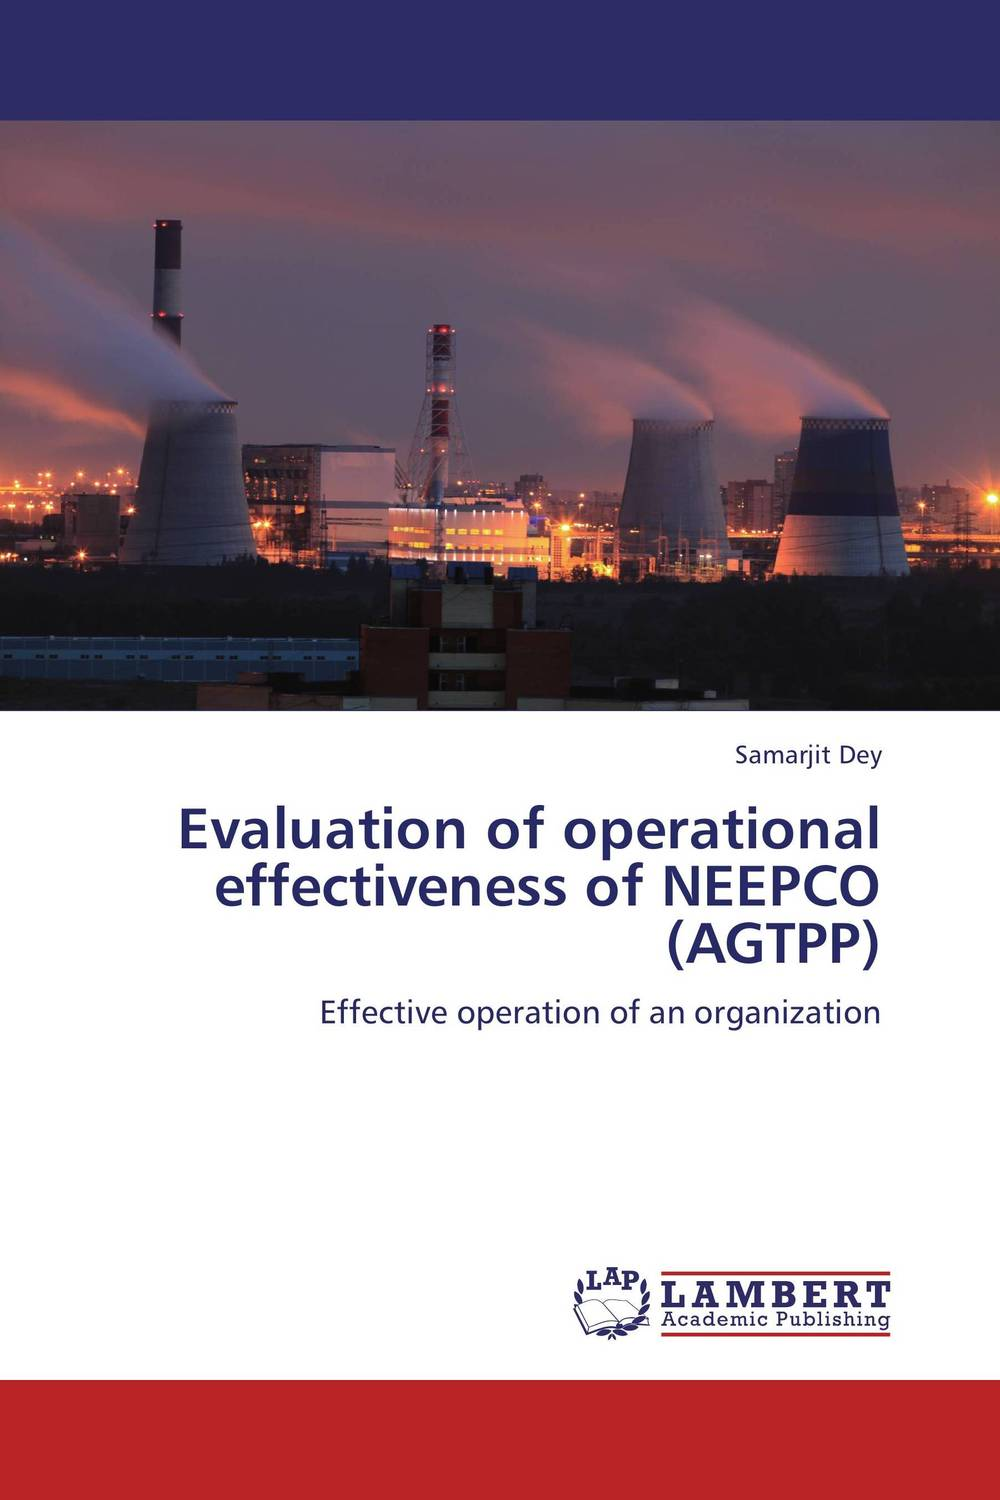 Evaluation of operational effectiveness of NEEPCO (AGTPP) hlako choma and mahodiela ramafalo dismissal based on operational requirements in the workplace